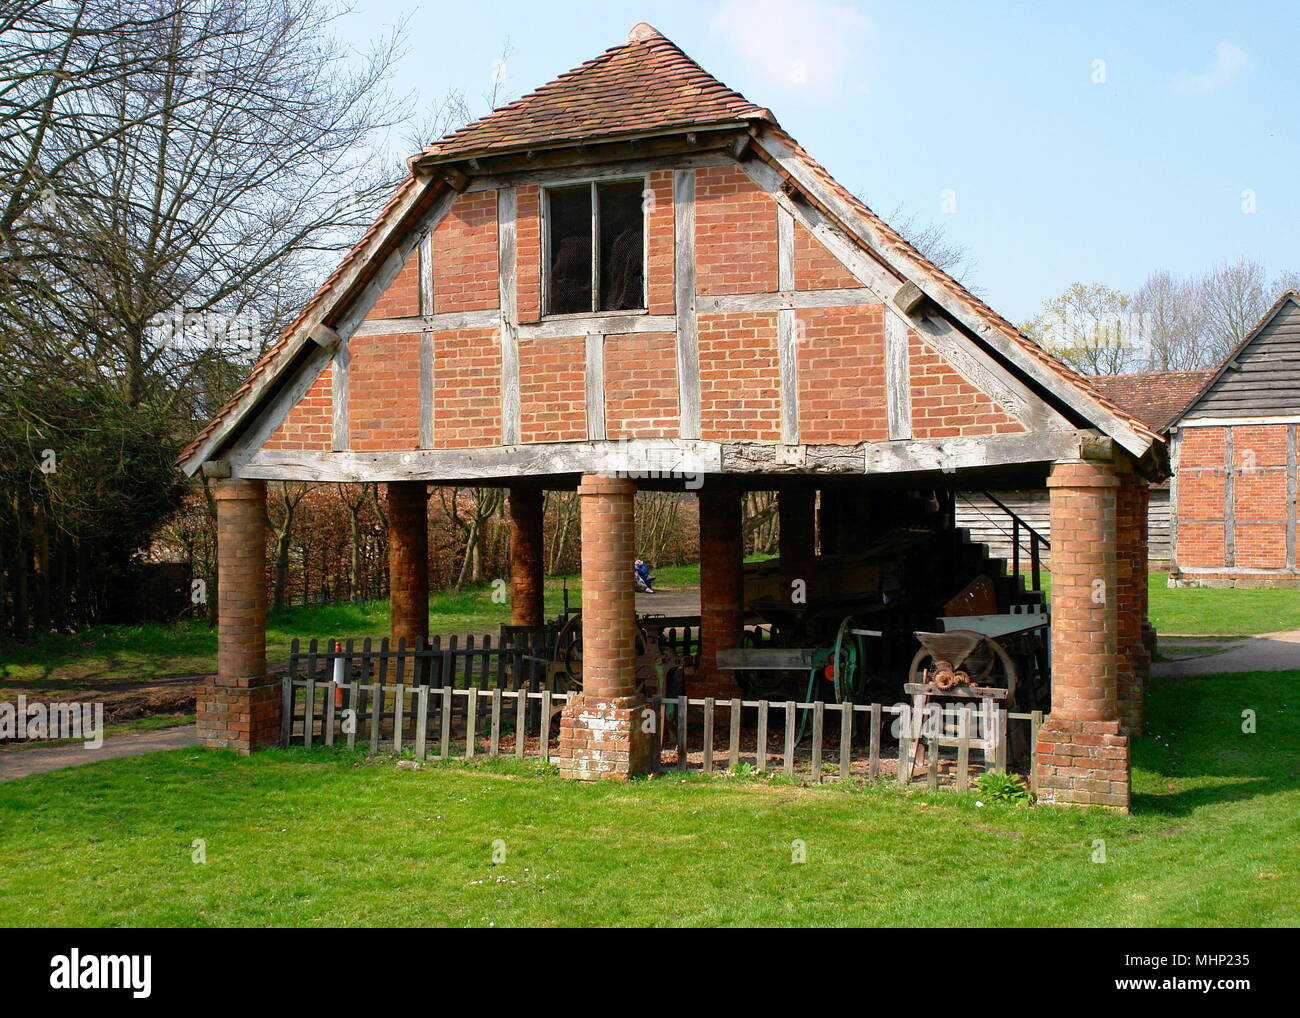 Old farm buildings at the Avoncroft Museum of Buildings, near Bromsgrove, Worcestershire.       Date: 2010s - Stock Image